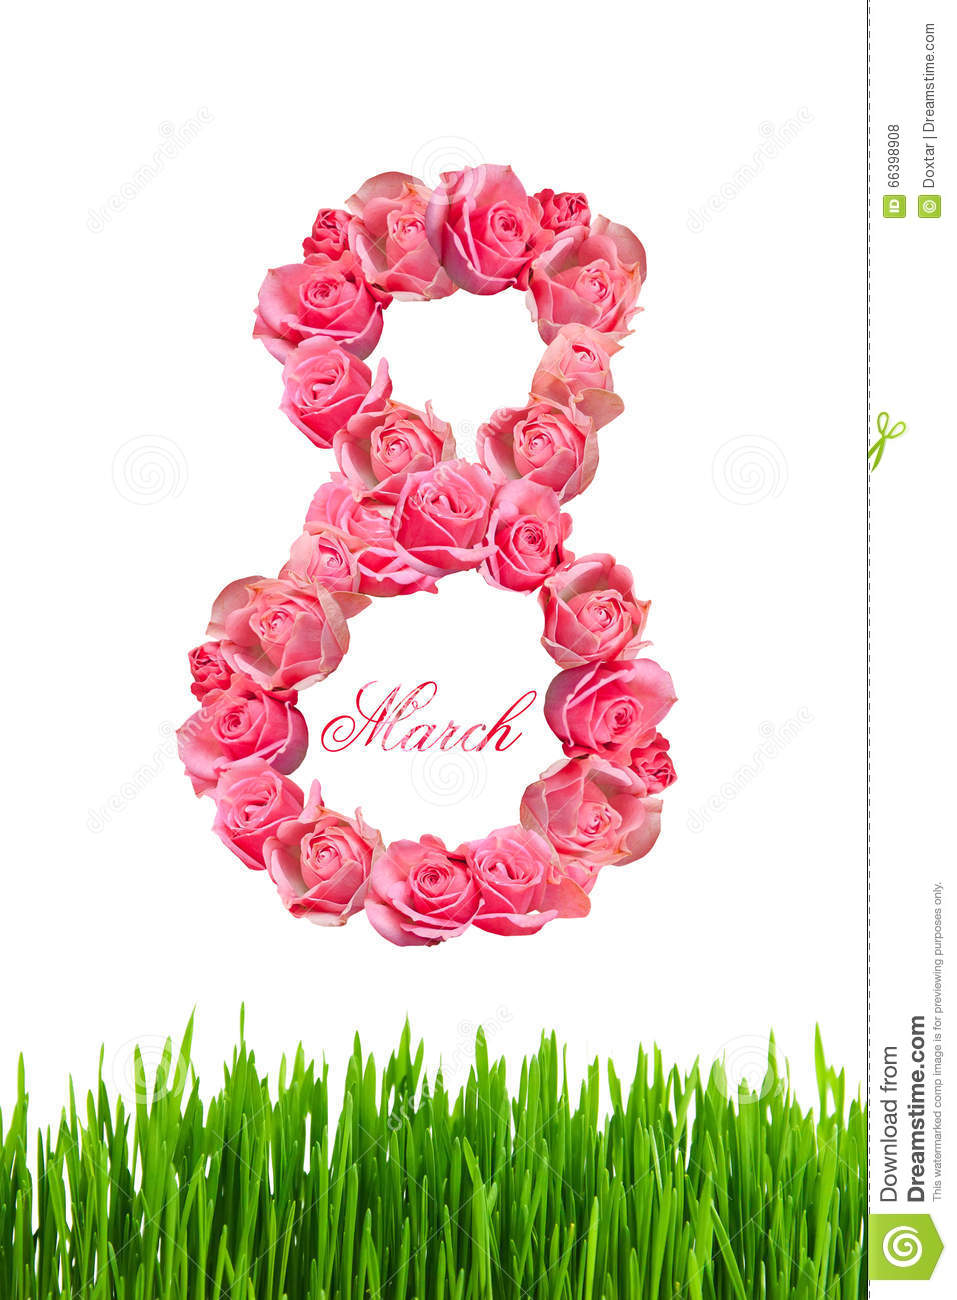 Women s Day on March 8